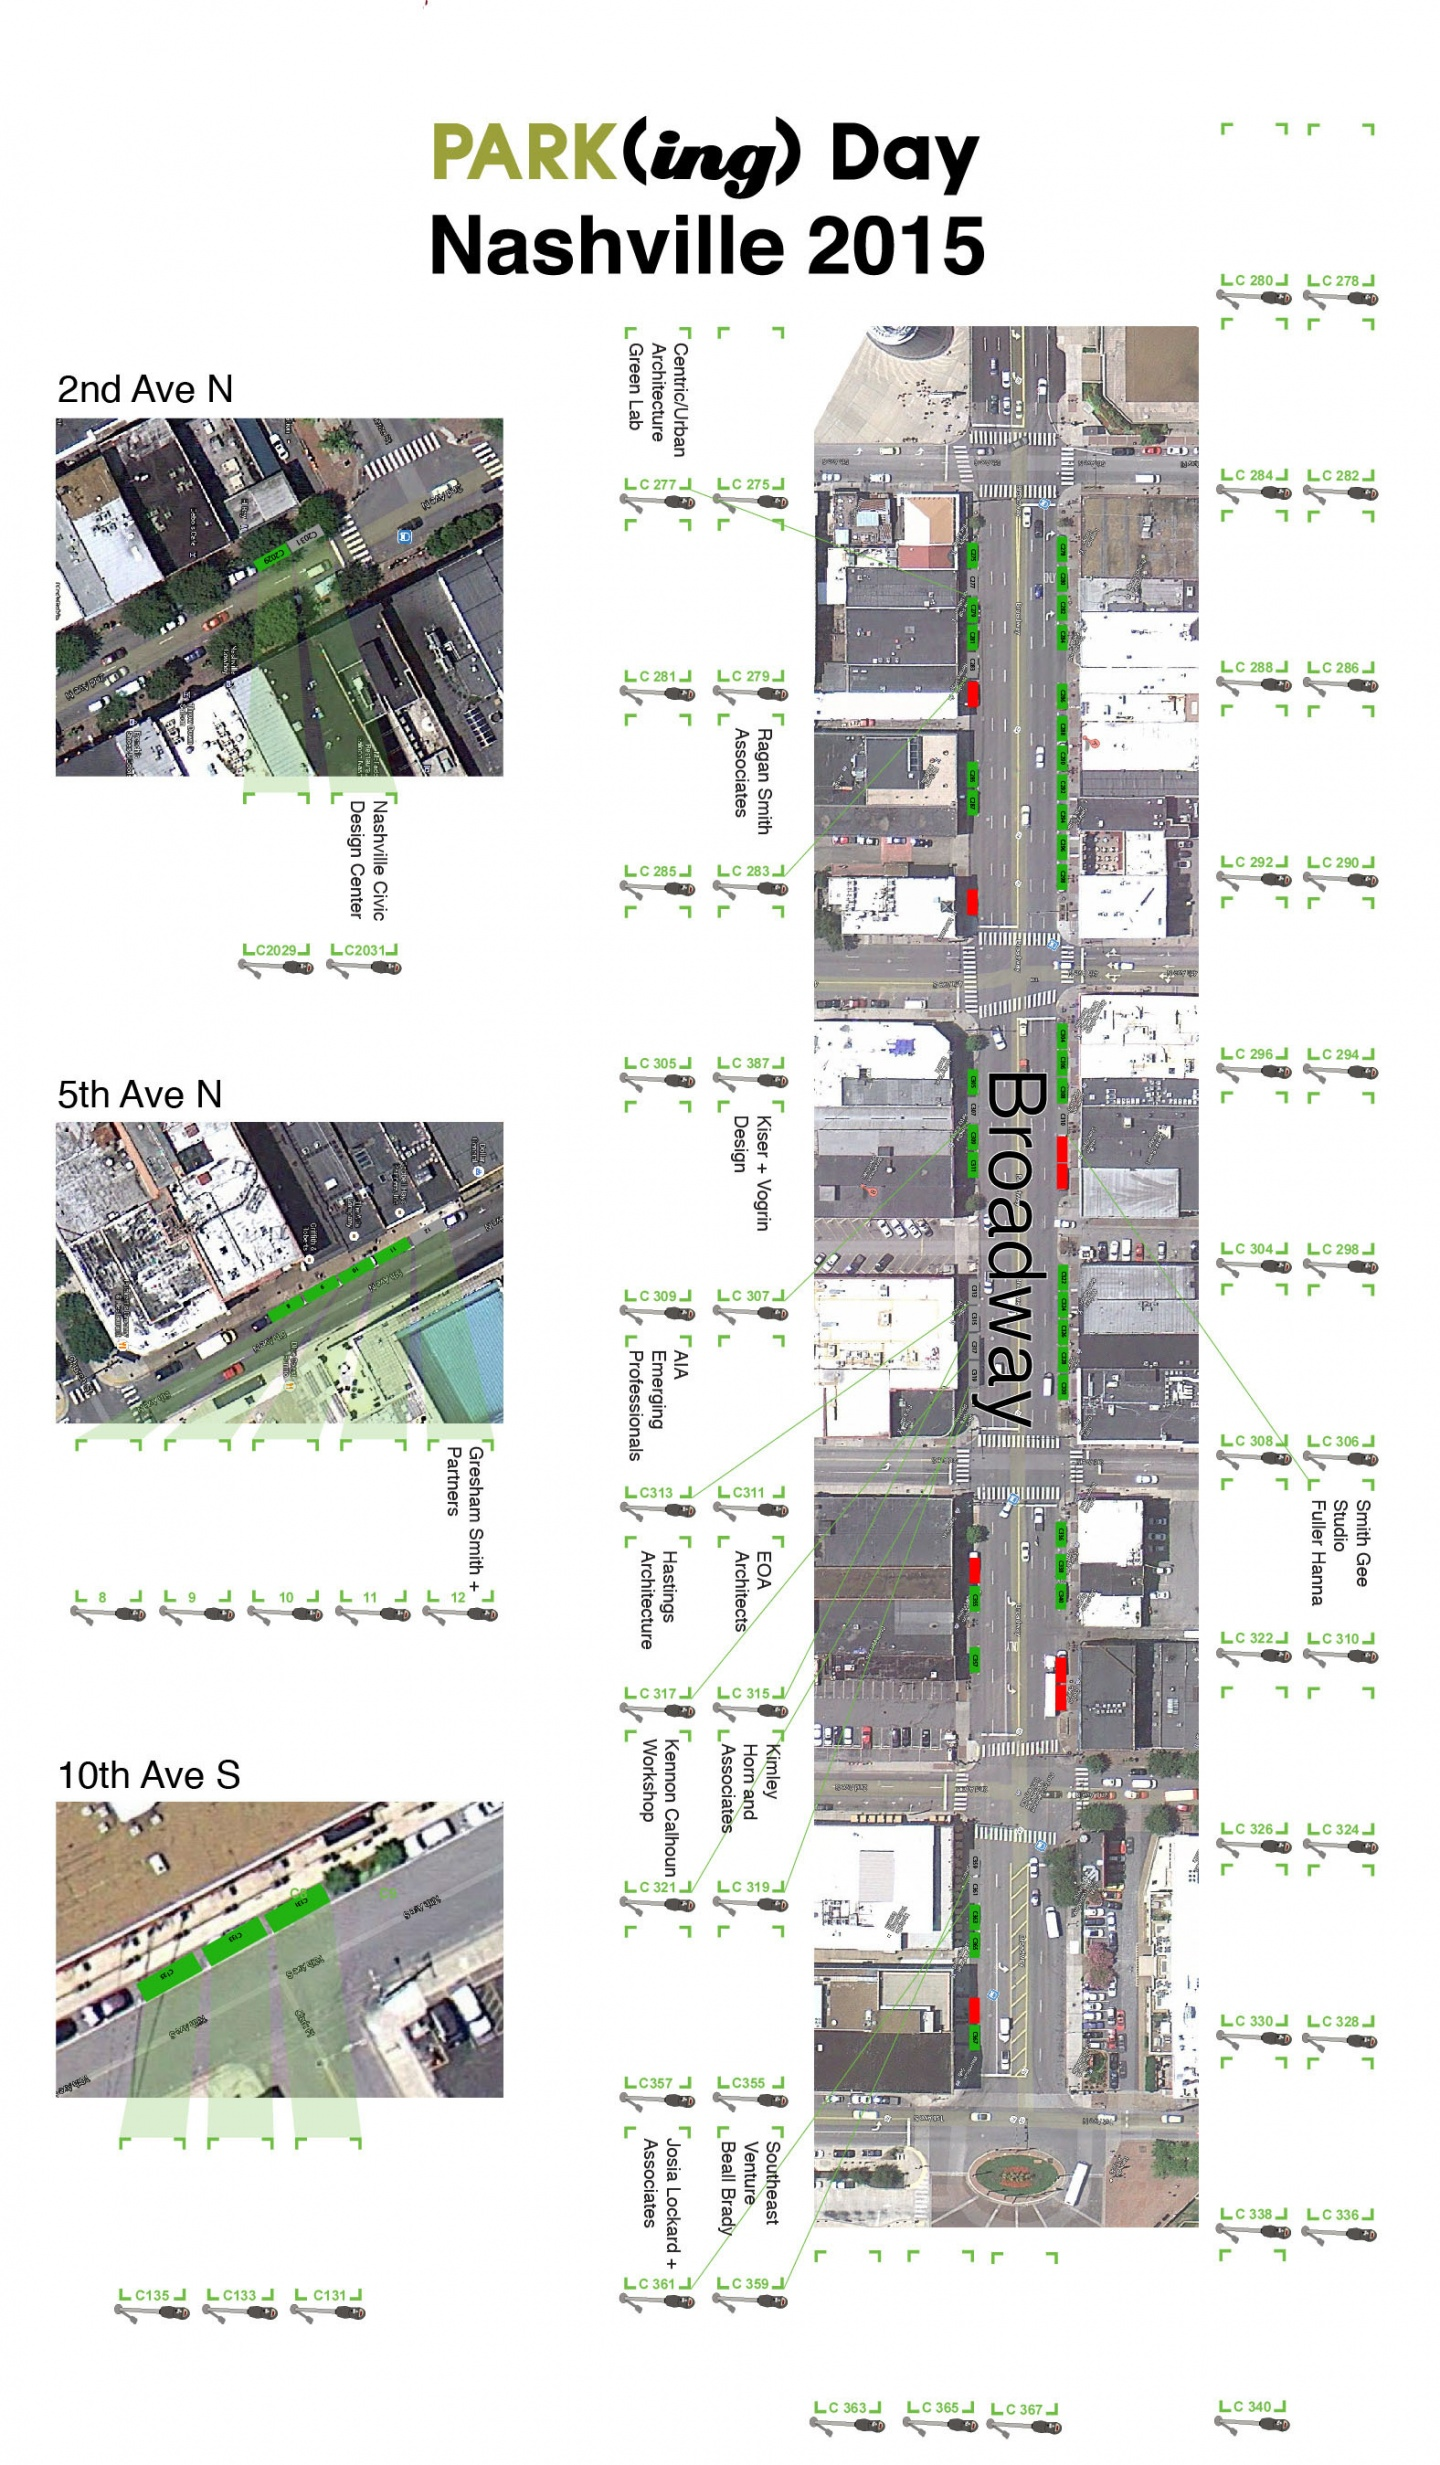 parking-day-nashville-map